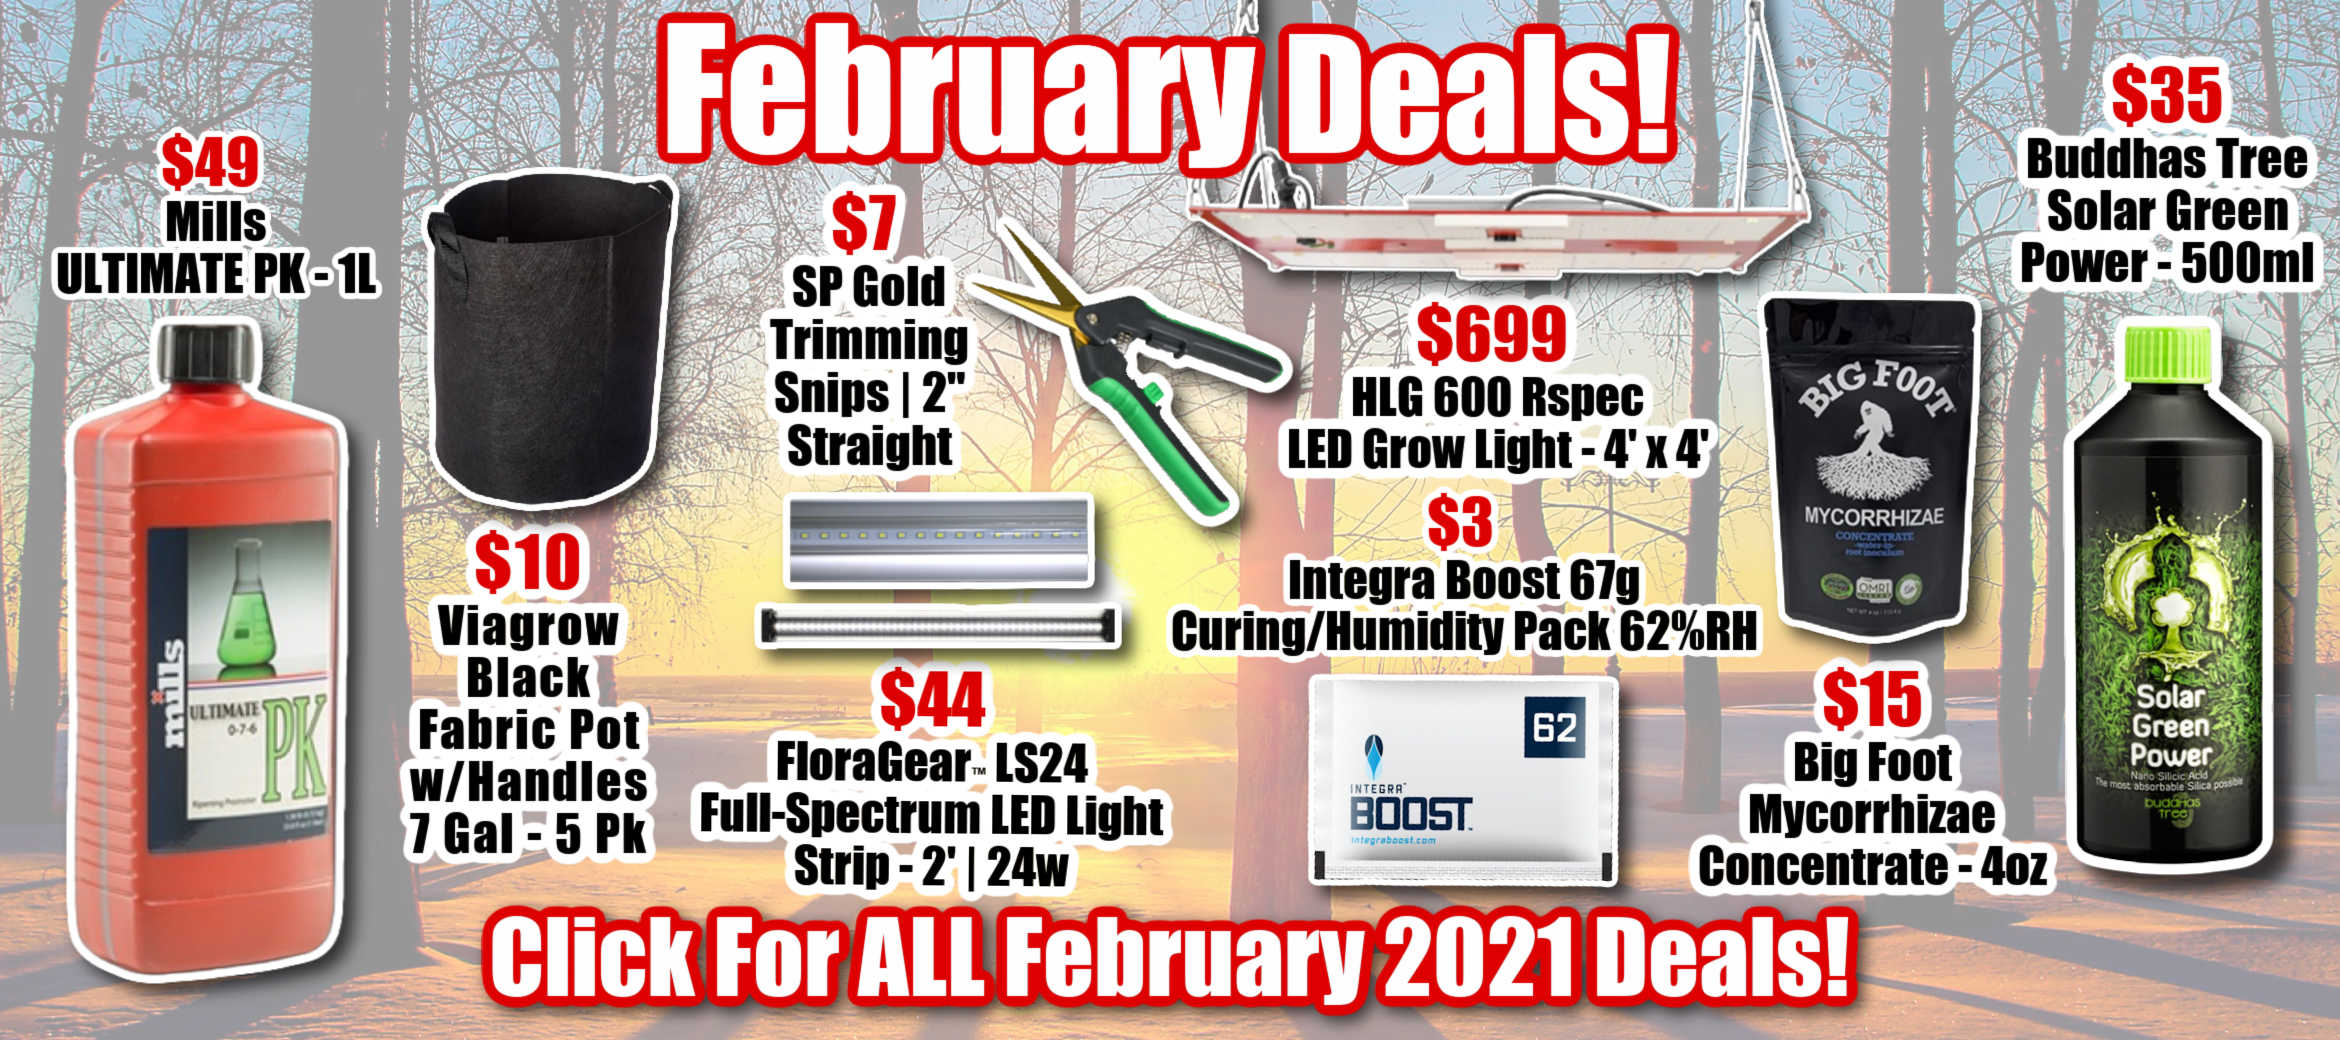 February Deals Monthly Specials